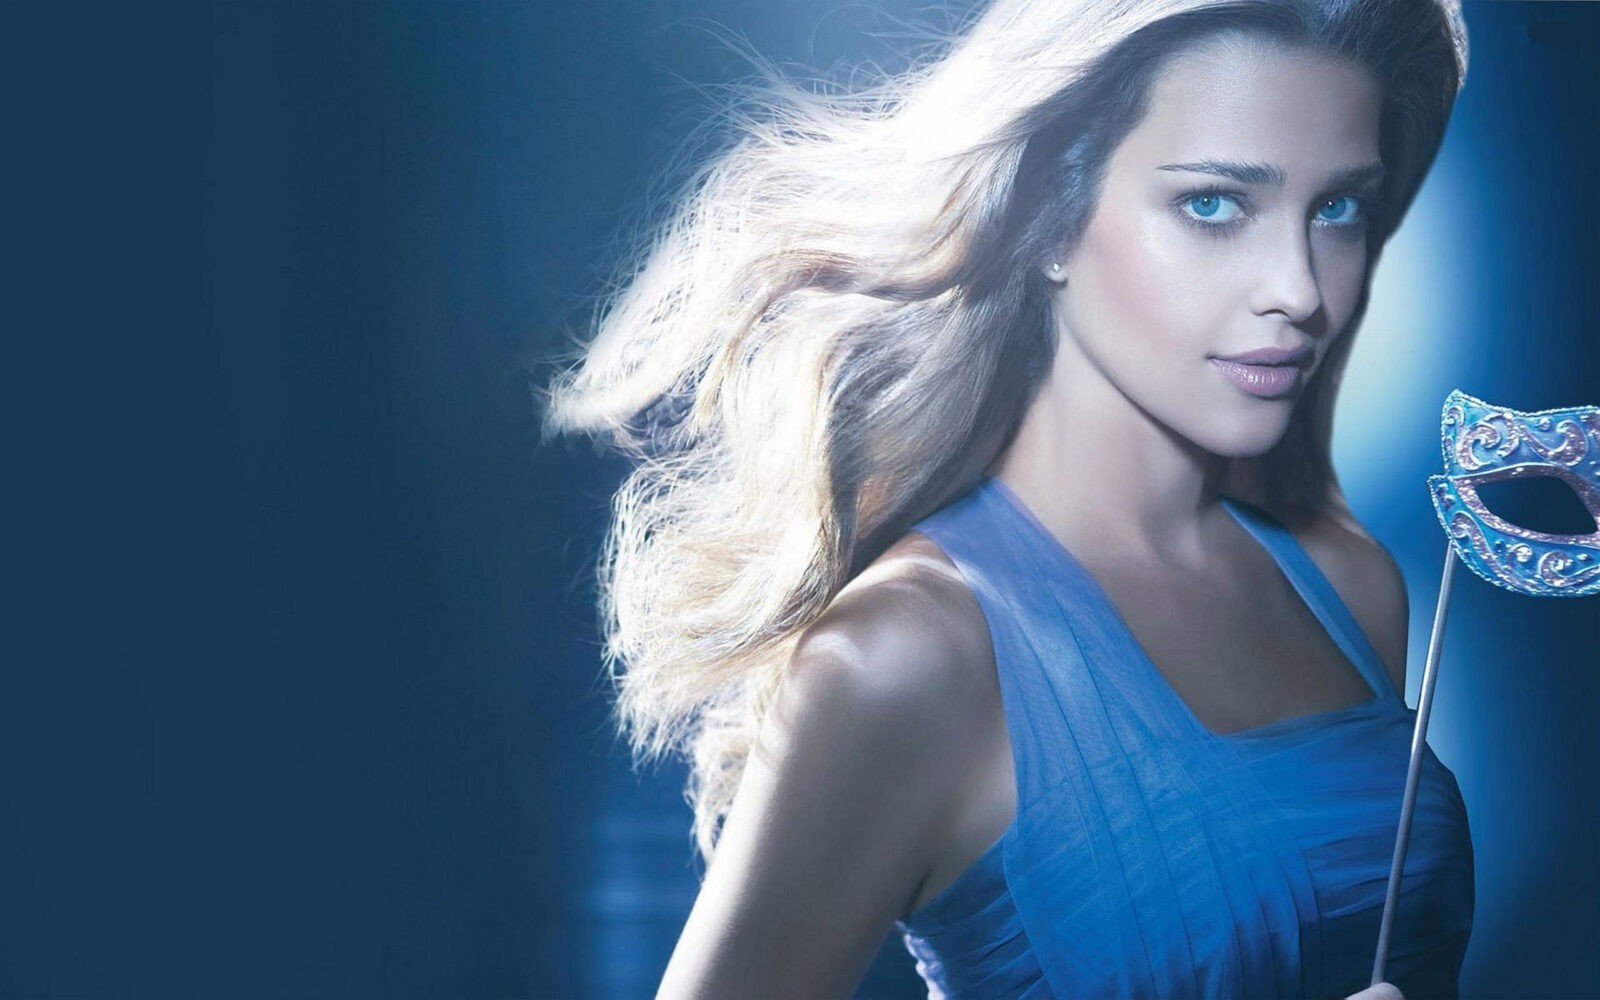 wallpaper High quality Ana Beatriz Barros in blue dress with mask